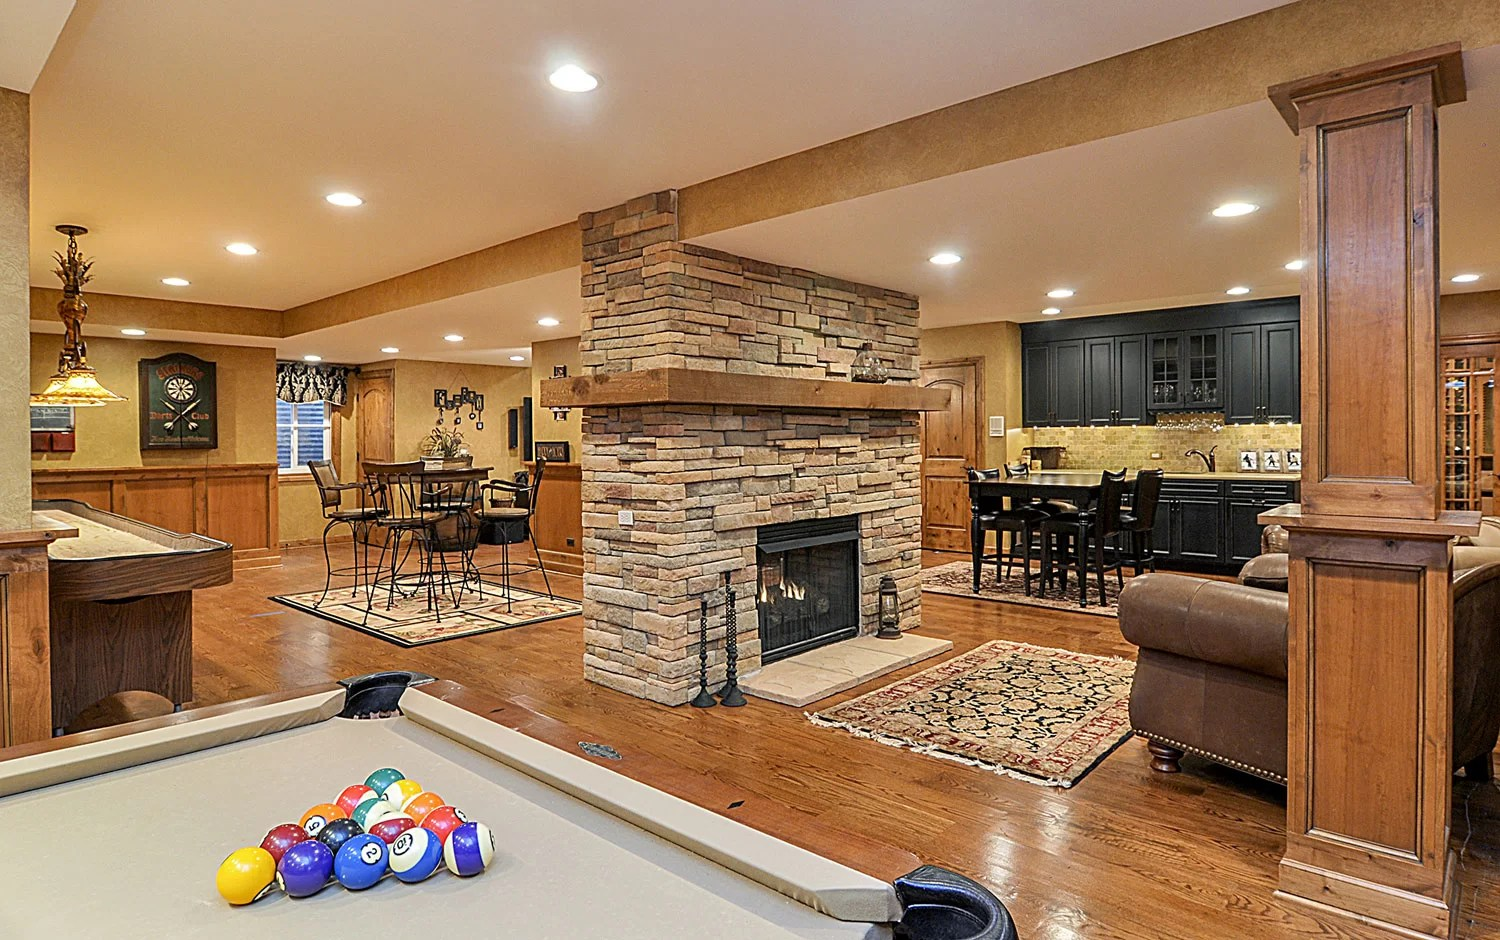 Basement Fireplace Ideas Michael And Nancy 39s Basement Remodel Pictures Home